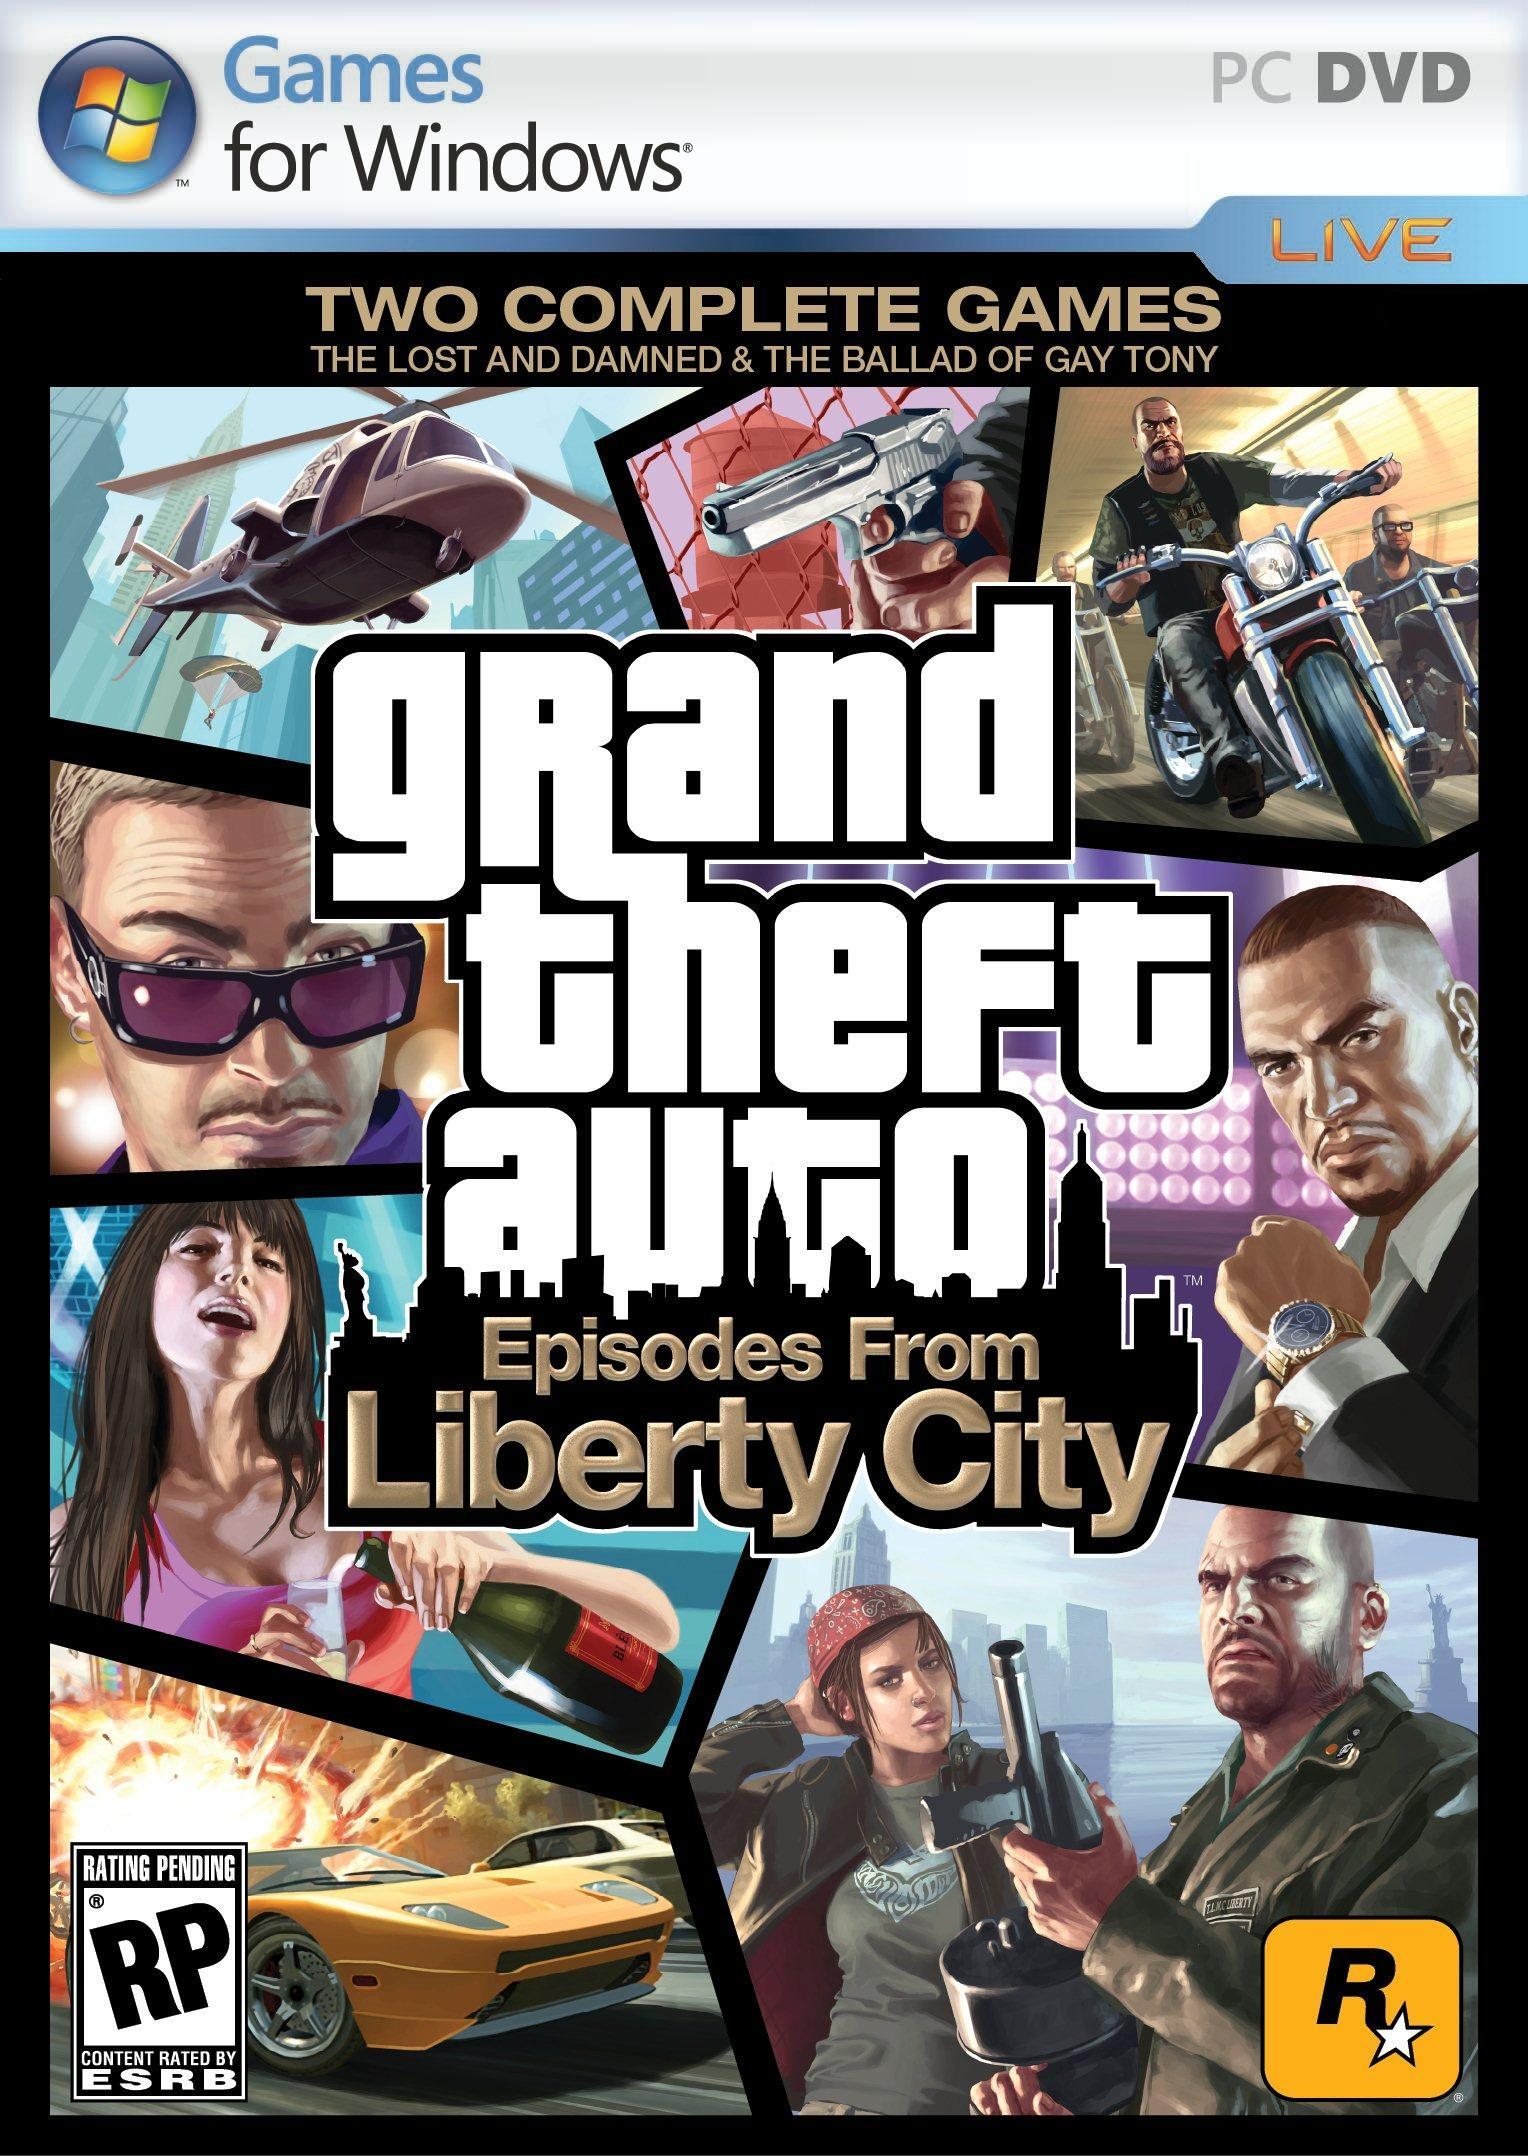 تحميل لعبة Grand Theft Auto - Episodes From Liberty City PC Game على أكثر من سيرفر Stardima_gta-episodesfromlibertycity-pc-boxart